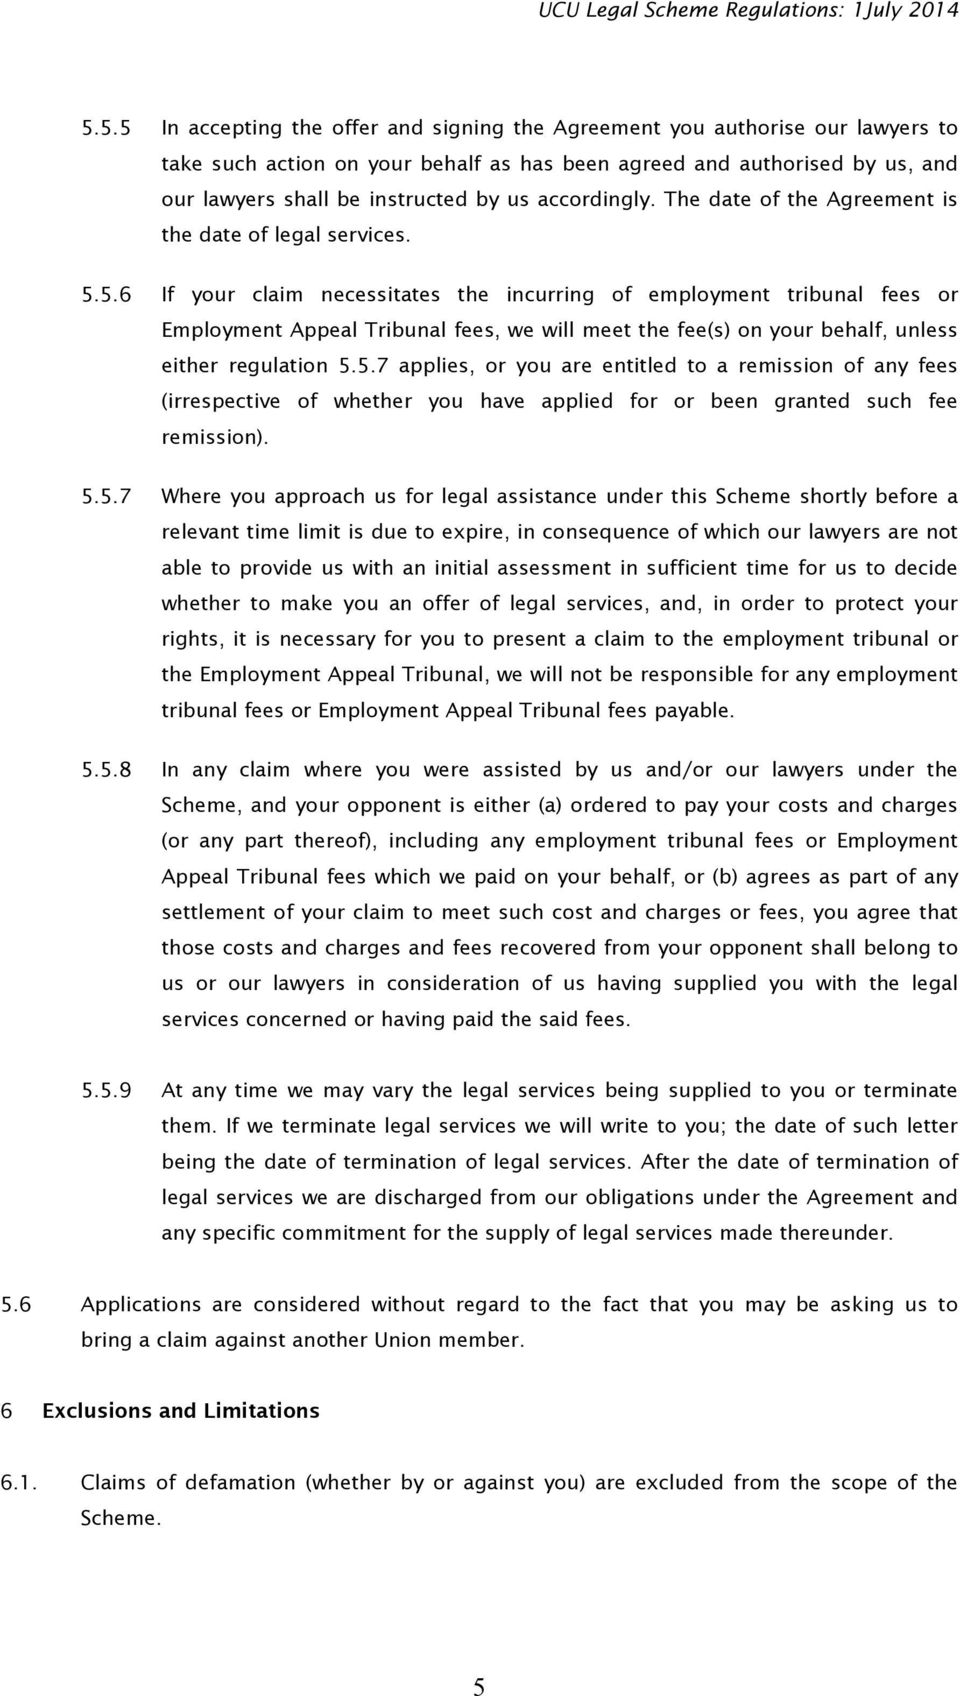 5.6 If your claim necessitates the incurring of employment tribunal fees or Employment Appeal Tribunal fees, we will meet the fee(s) on your behalf, unless either regulation 5.5.7 applies, or you are entitled to a remission of any fees (irrespective of whether you have applied for or been granted such fee remission).